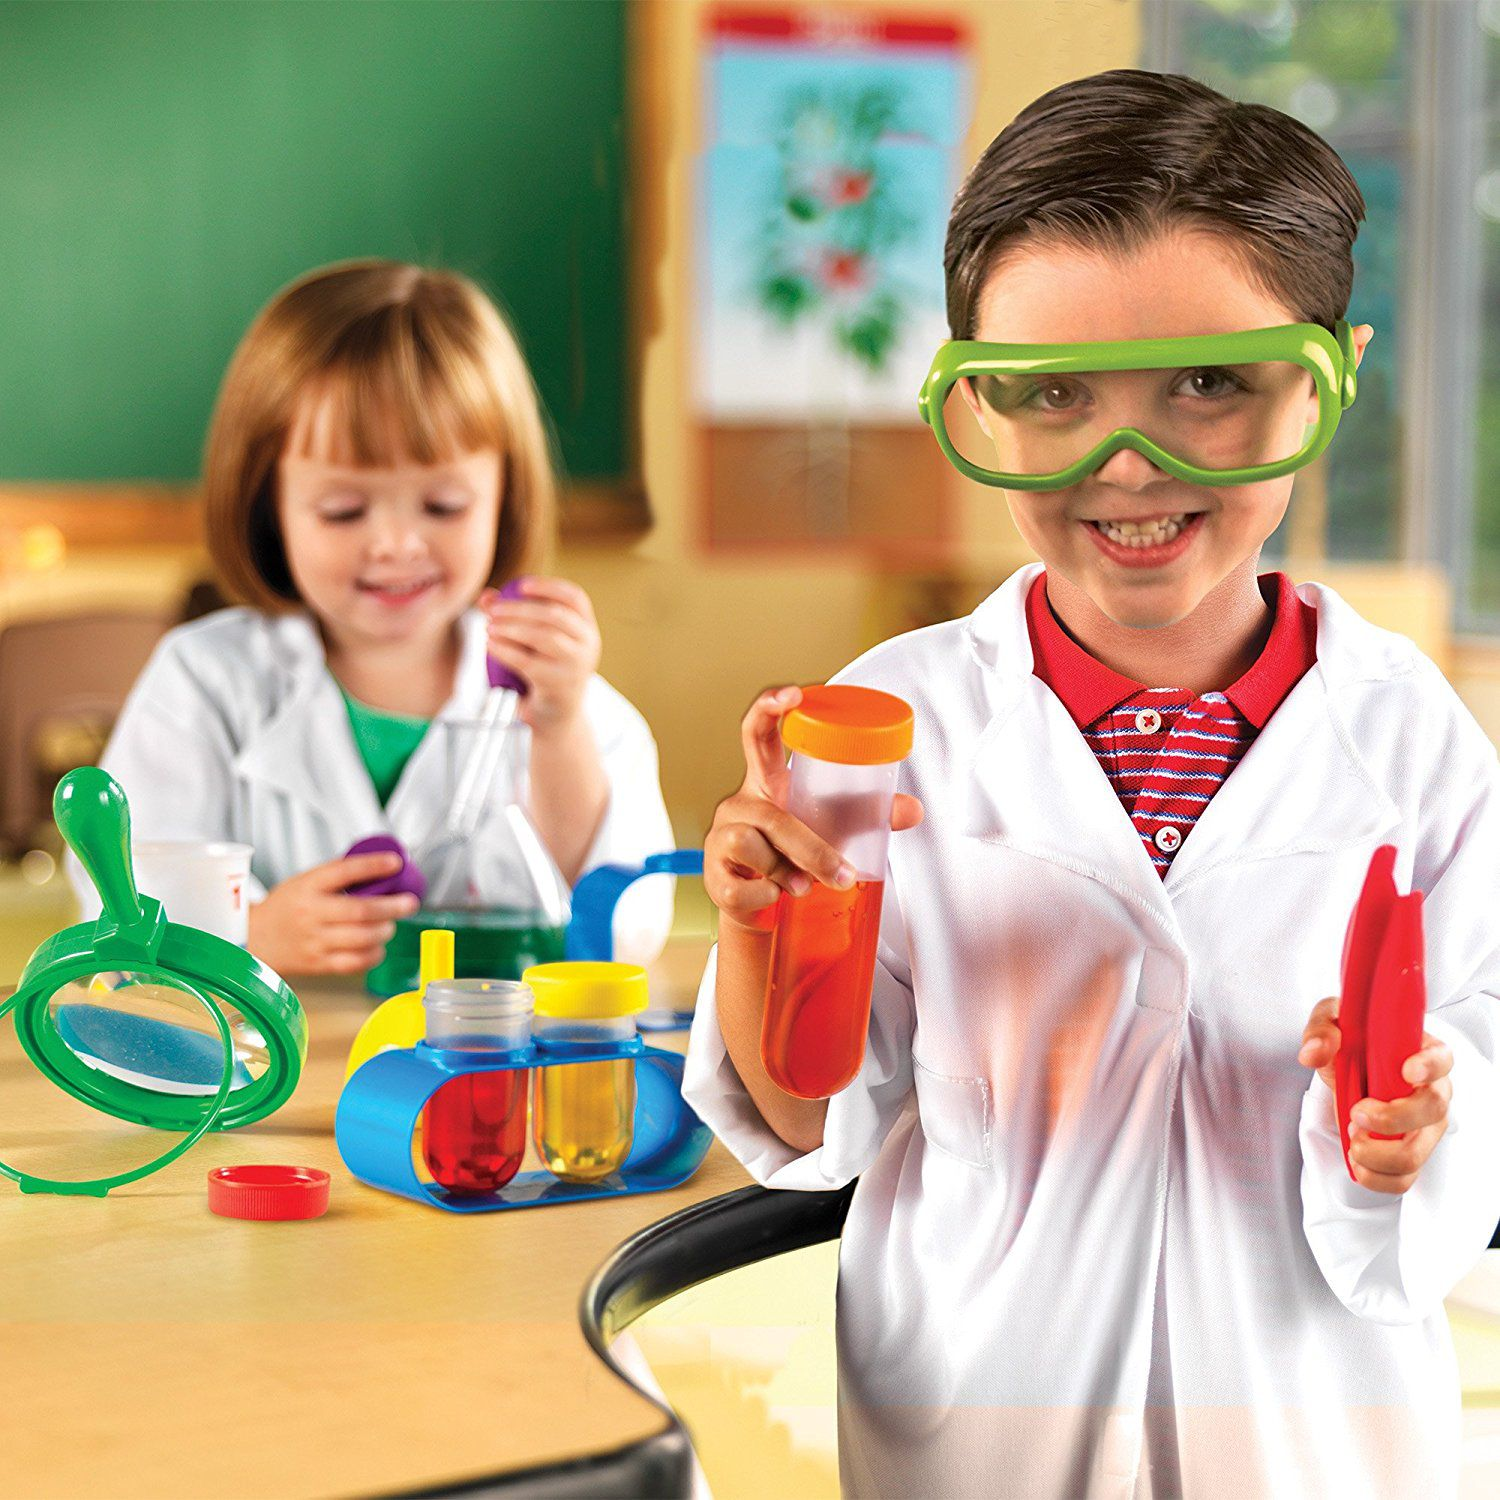 The 10 Best Science Toys To Buy In 2019 Gifts For Kids New Snap Circuits Beginner Kit 5 And Up